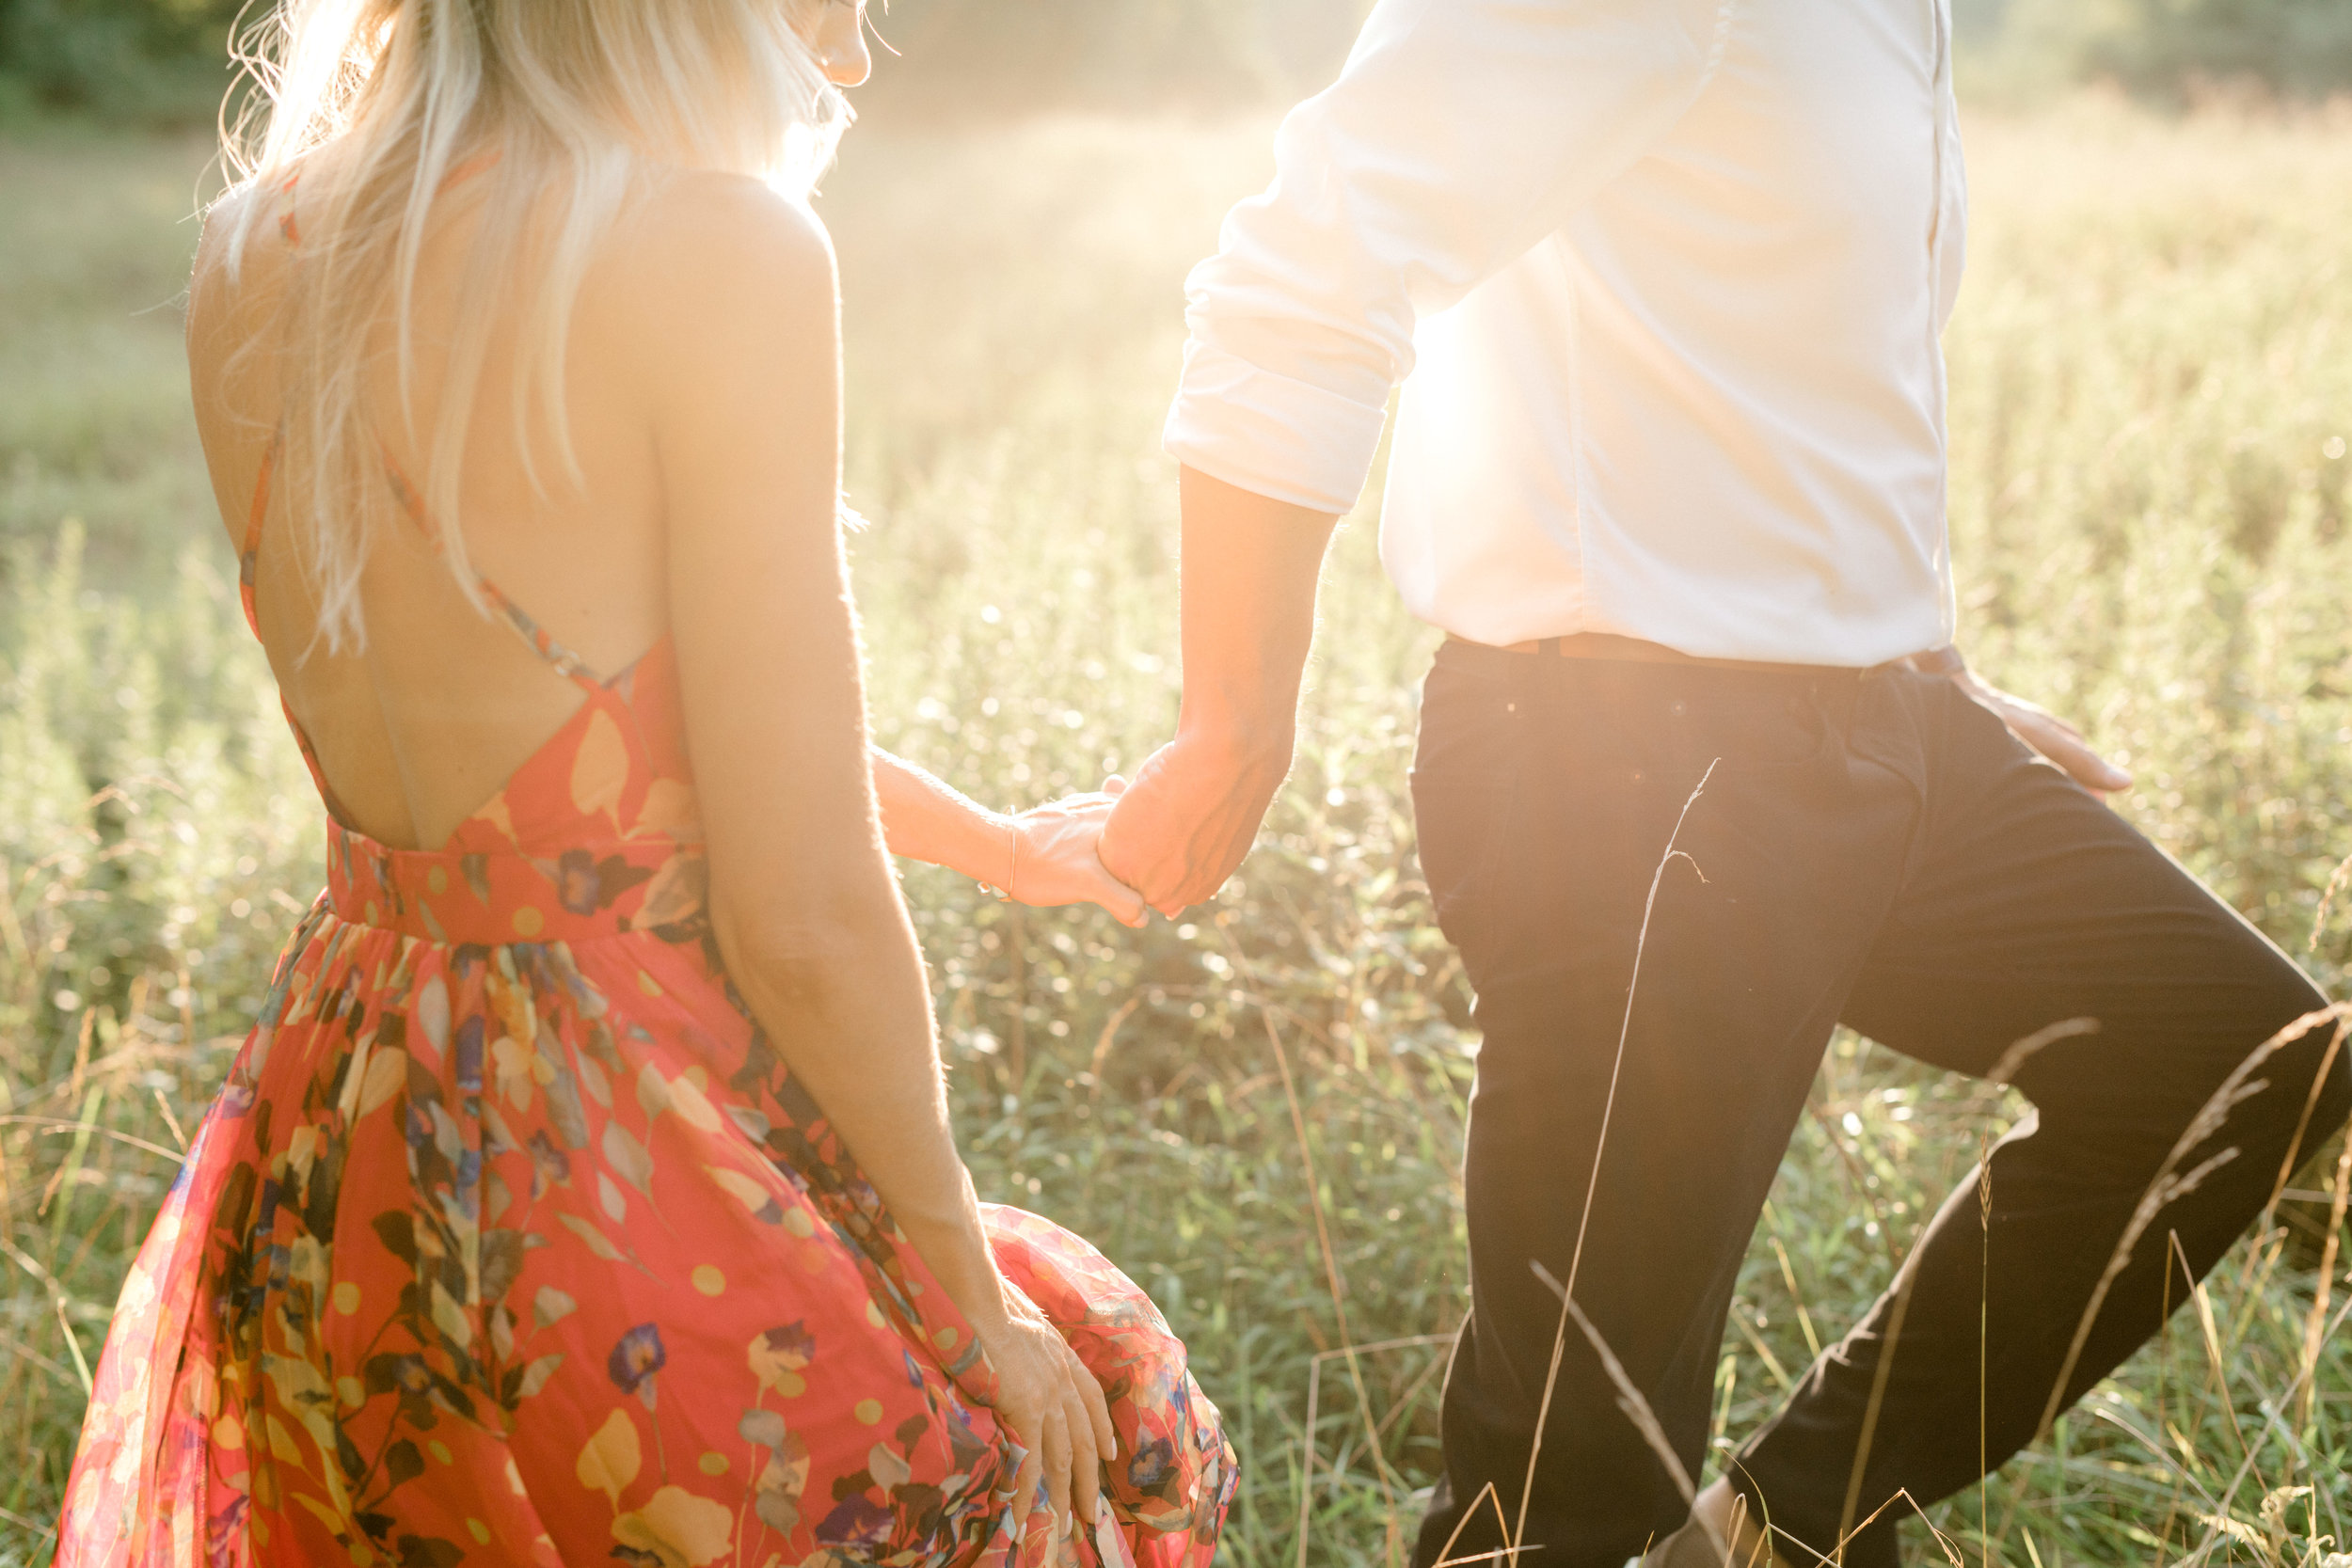 In this romantic sunset woodland engagement session at Parque at Ridley Creek, Bill leads Liz into a glowing sunlit field hand-in-hand. An intimate moment that feels a little boho, we love it.